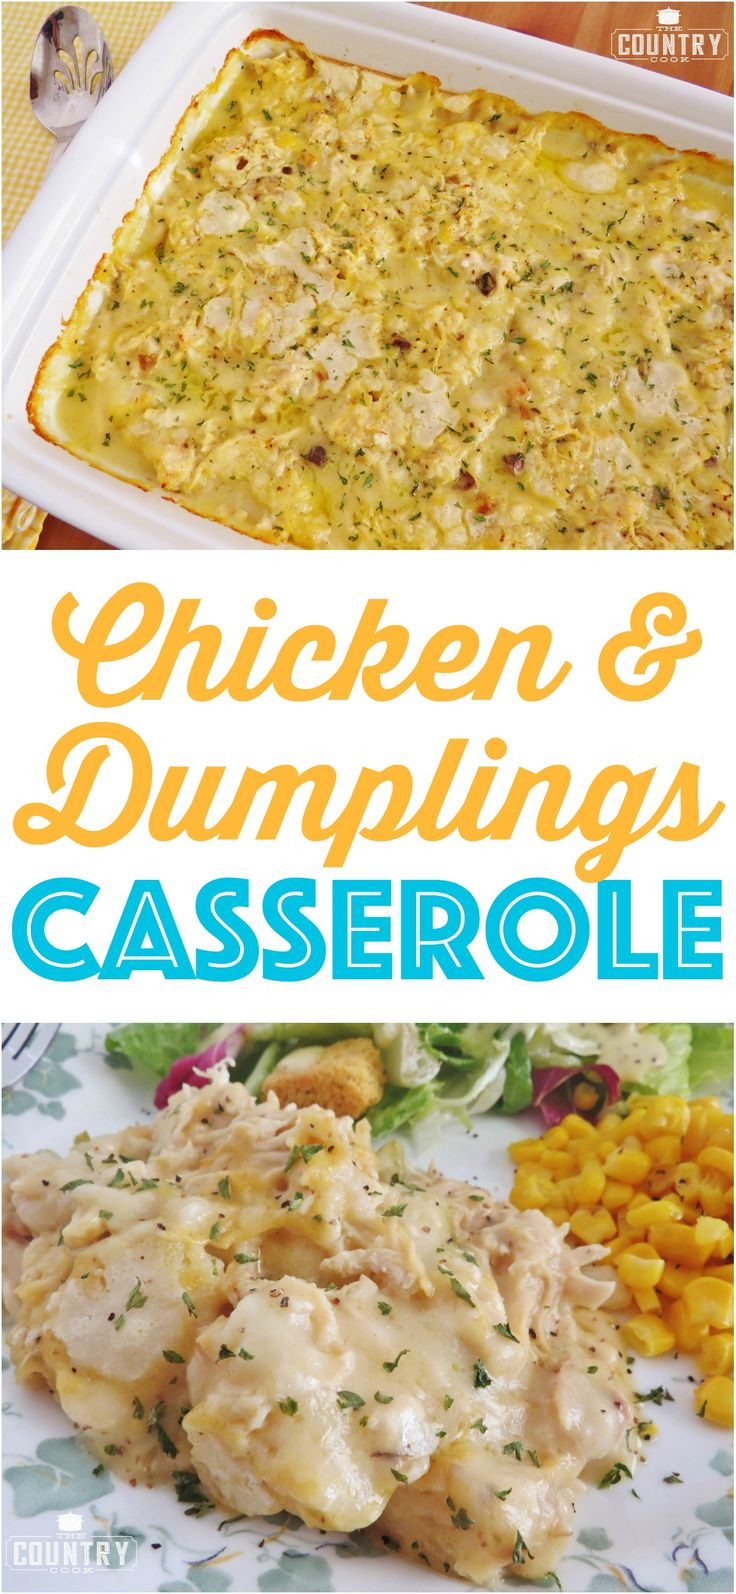 Chicken and Dumplings Casserole recipe at The Country Cook. So easy and yummy!